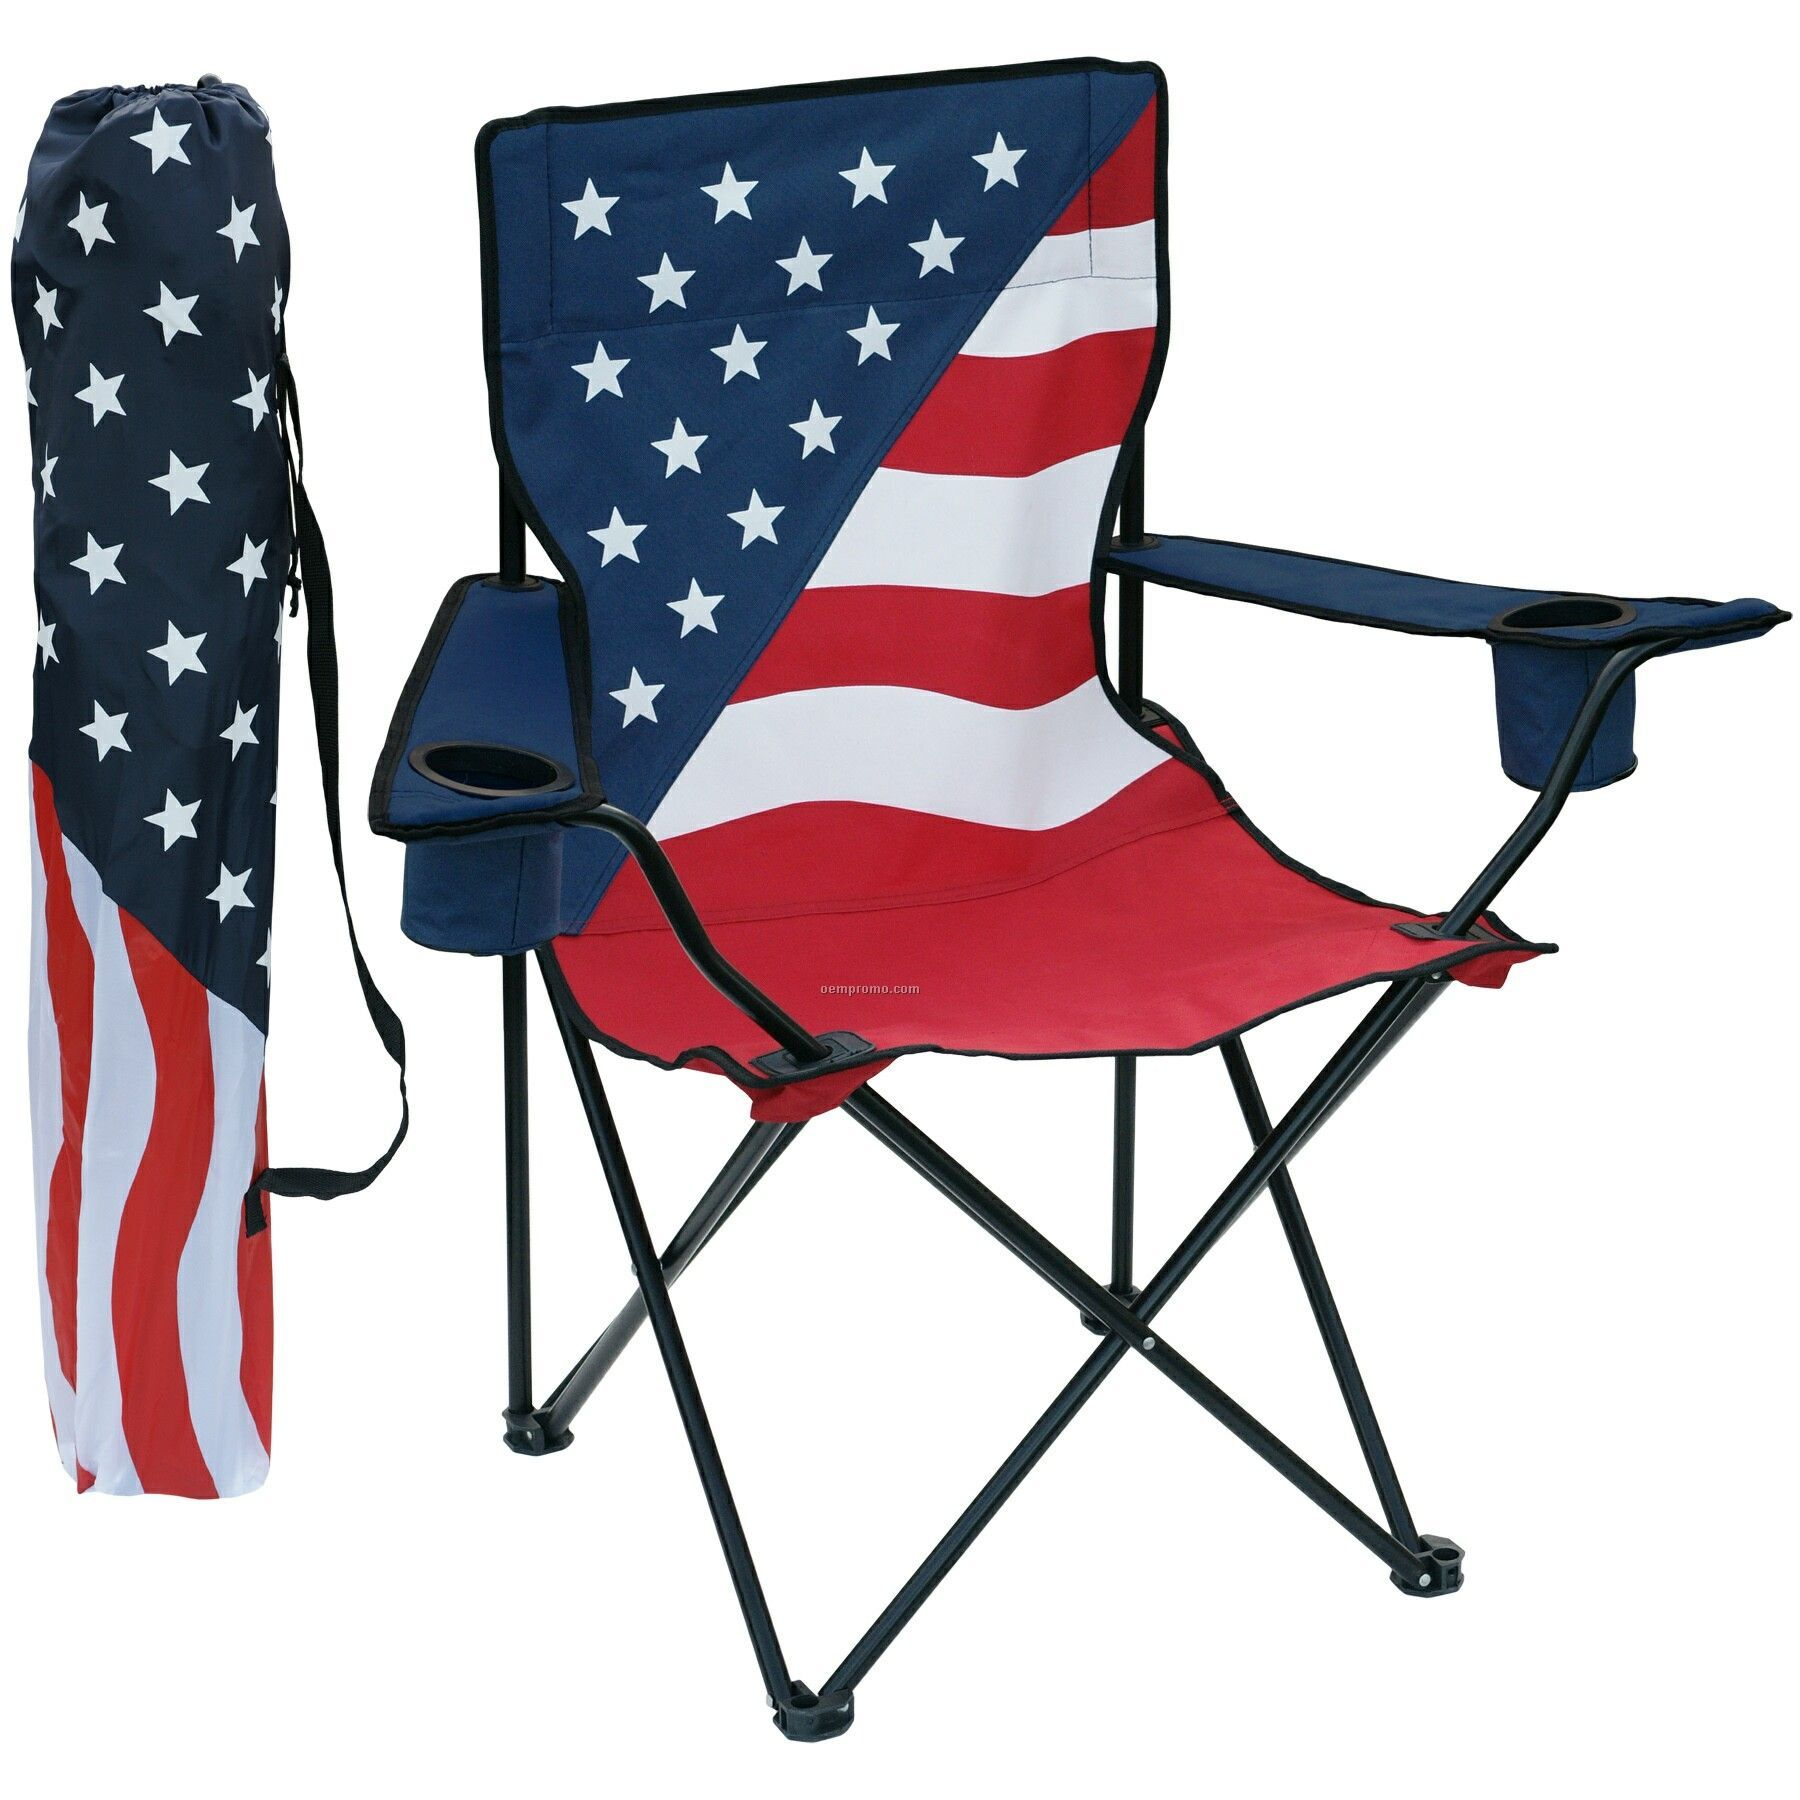 Patriotic Folding Chair W/Arm Rests, 2 Cup Holders And Matching Carry Bag.